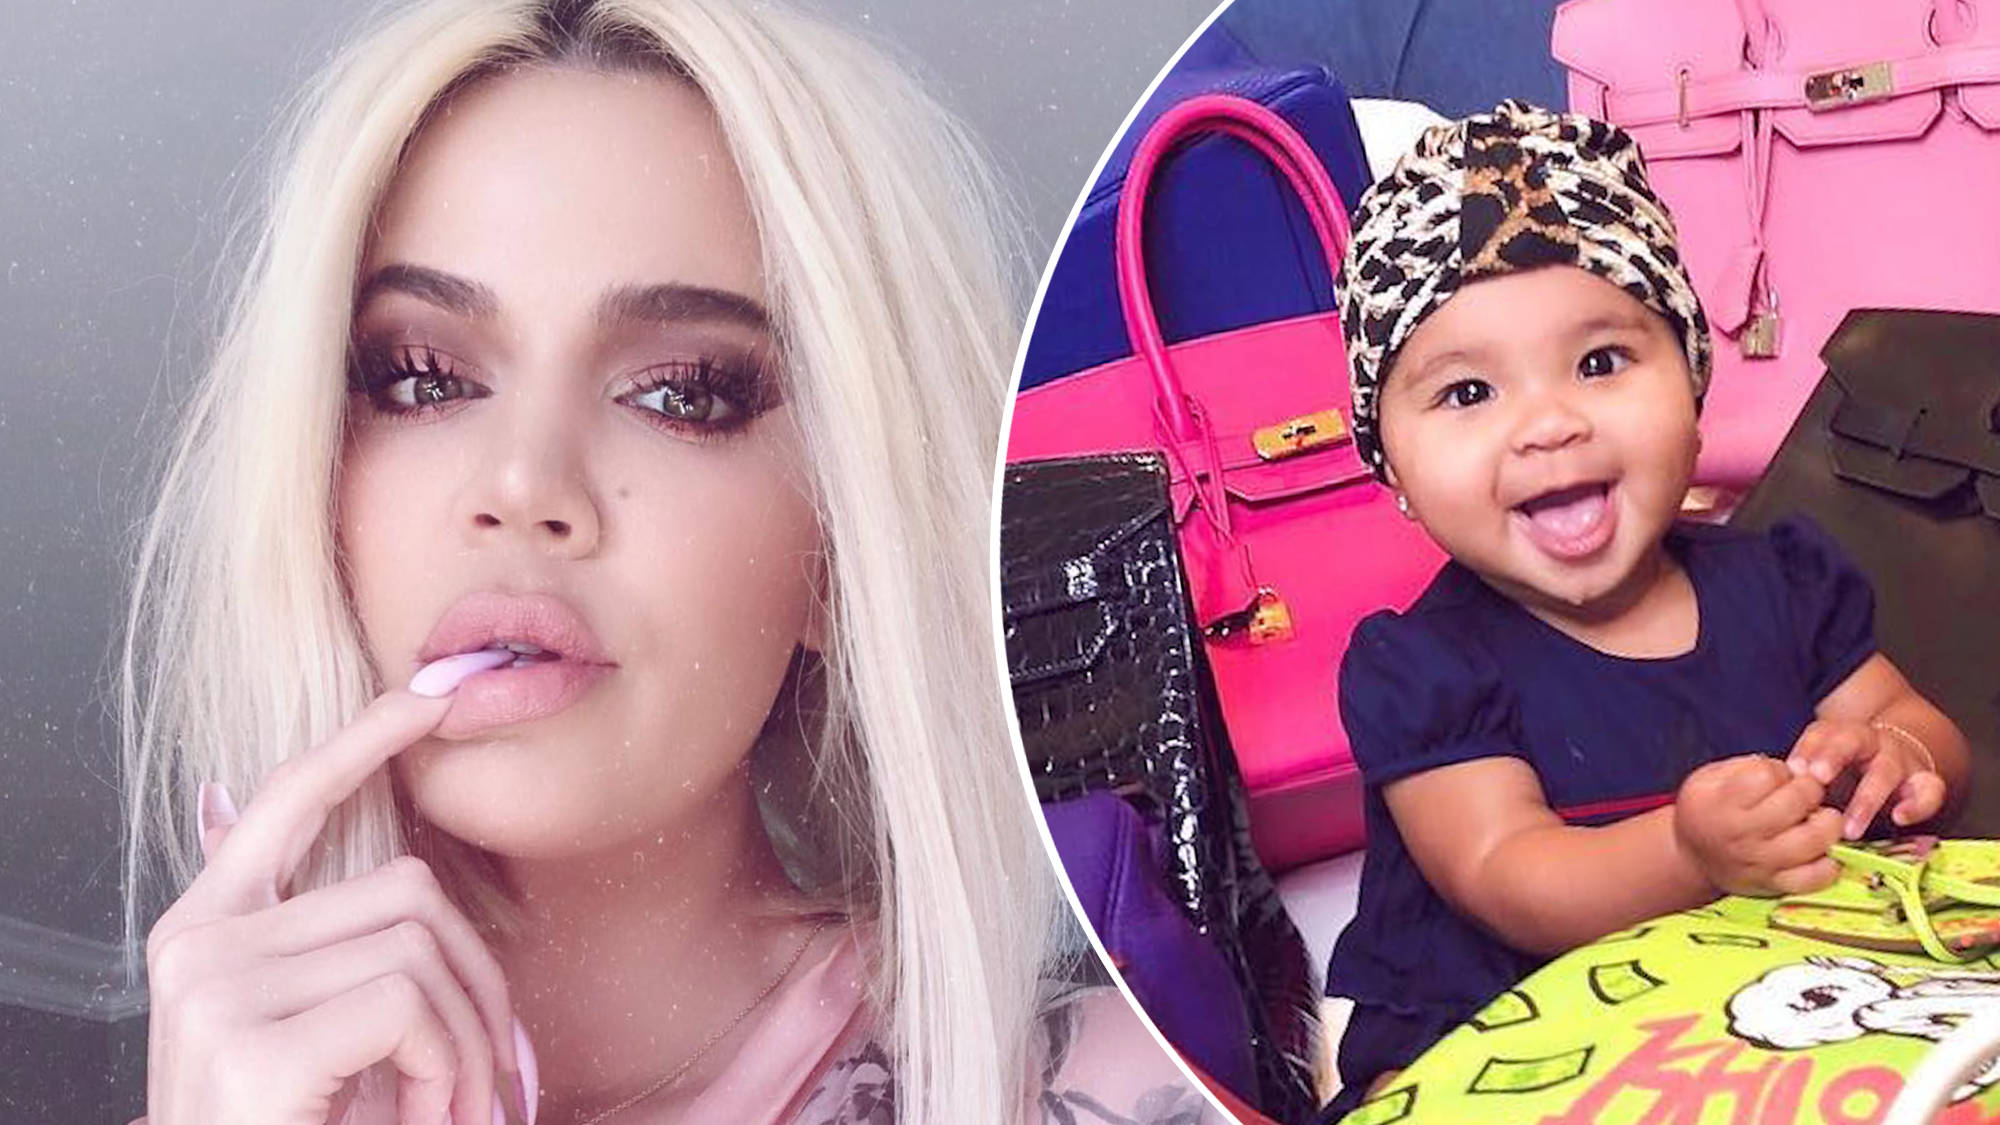 khloe-kardashian-celebrates-her-daughter-true-thompsons-first-birthday-tristan-thompson-also-marks-the-event-see-the-pics